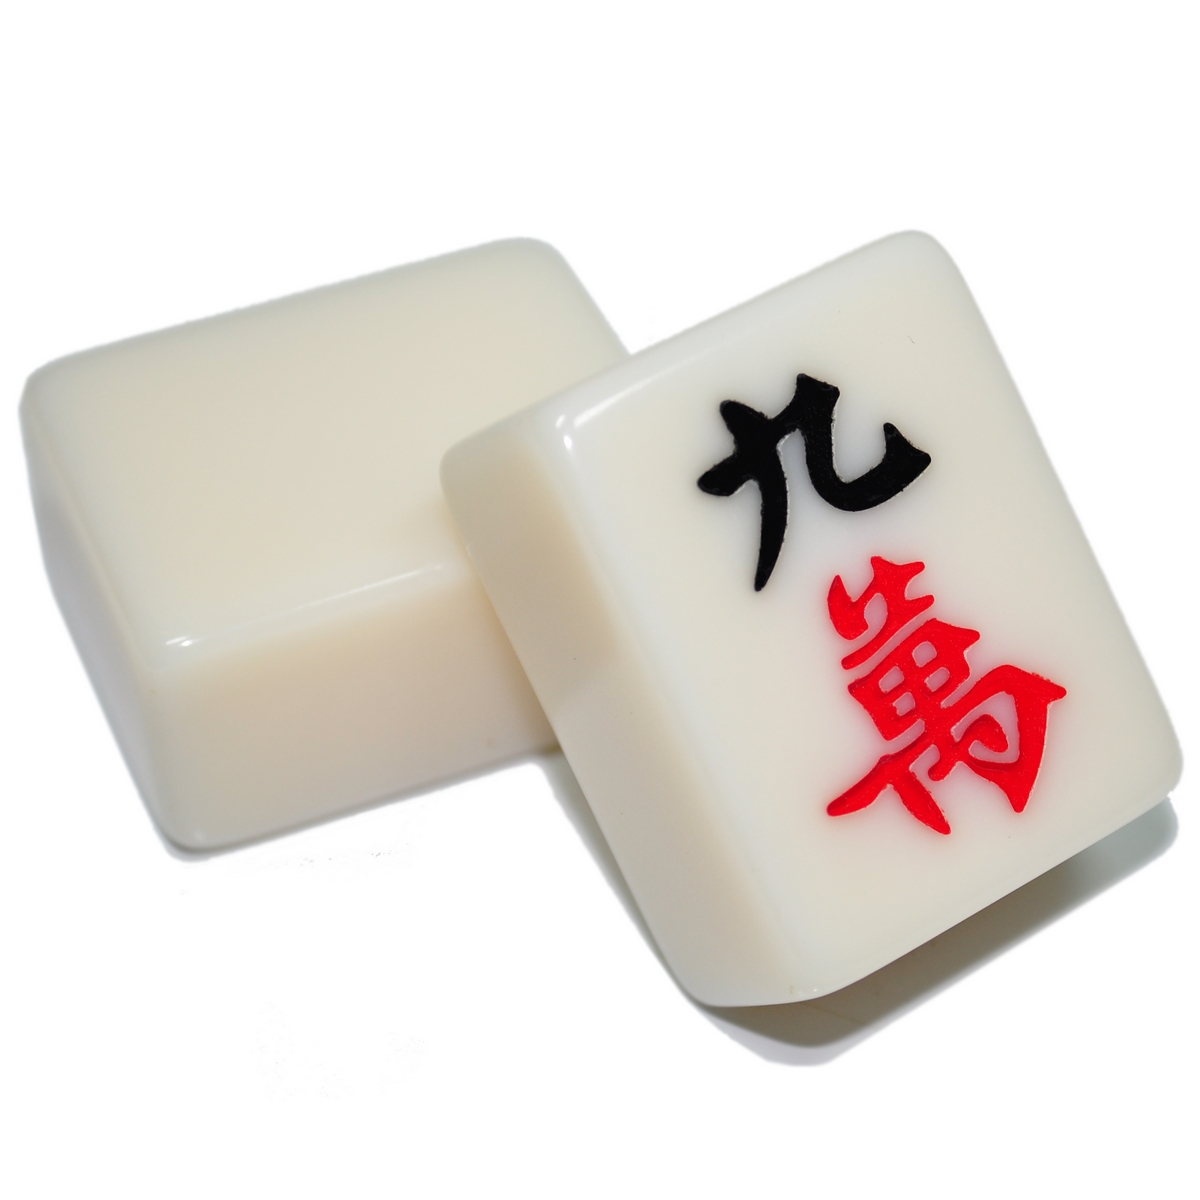 70 percent authentic imitation jade Mahjong 38-42M Crystal Jade provincial  extra large household precision tile